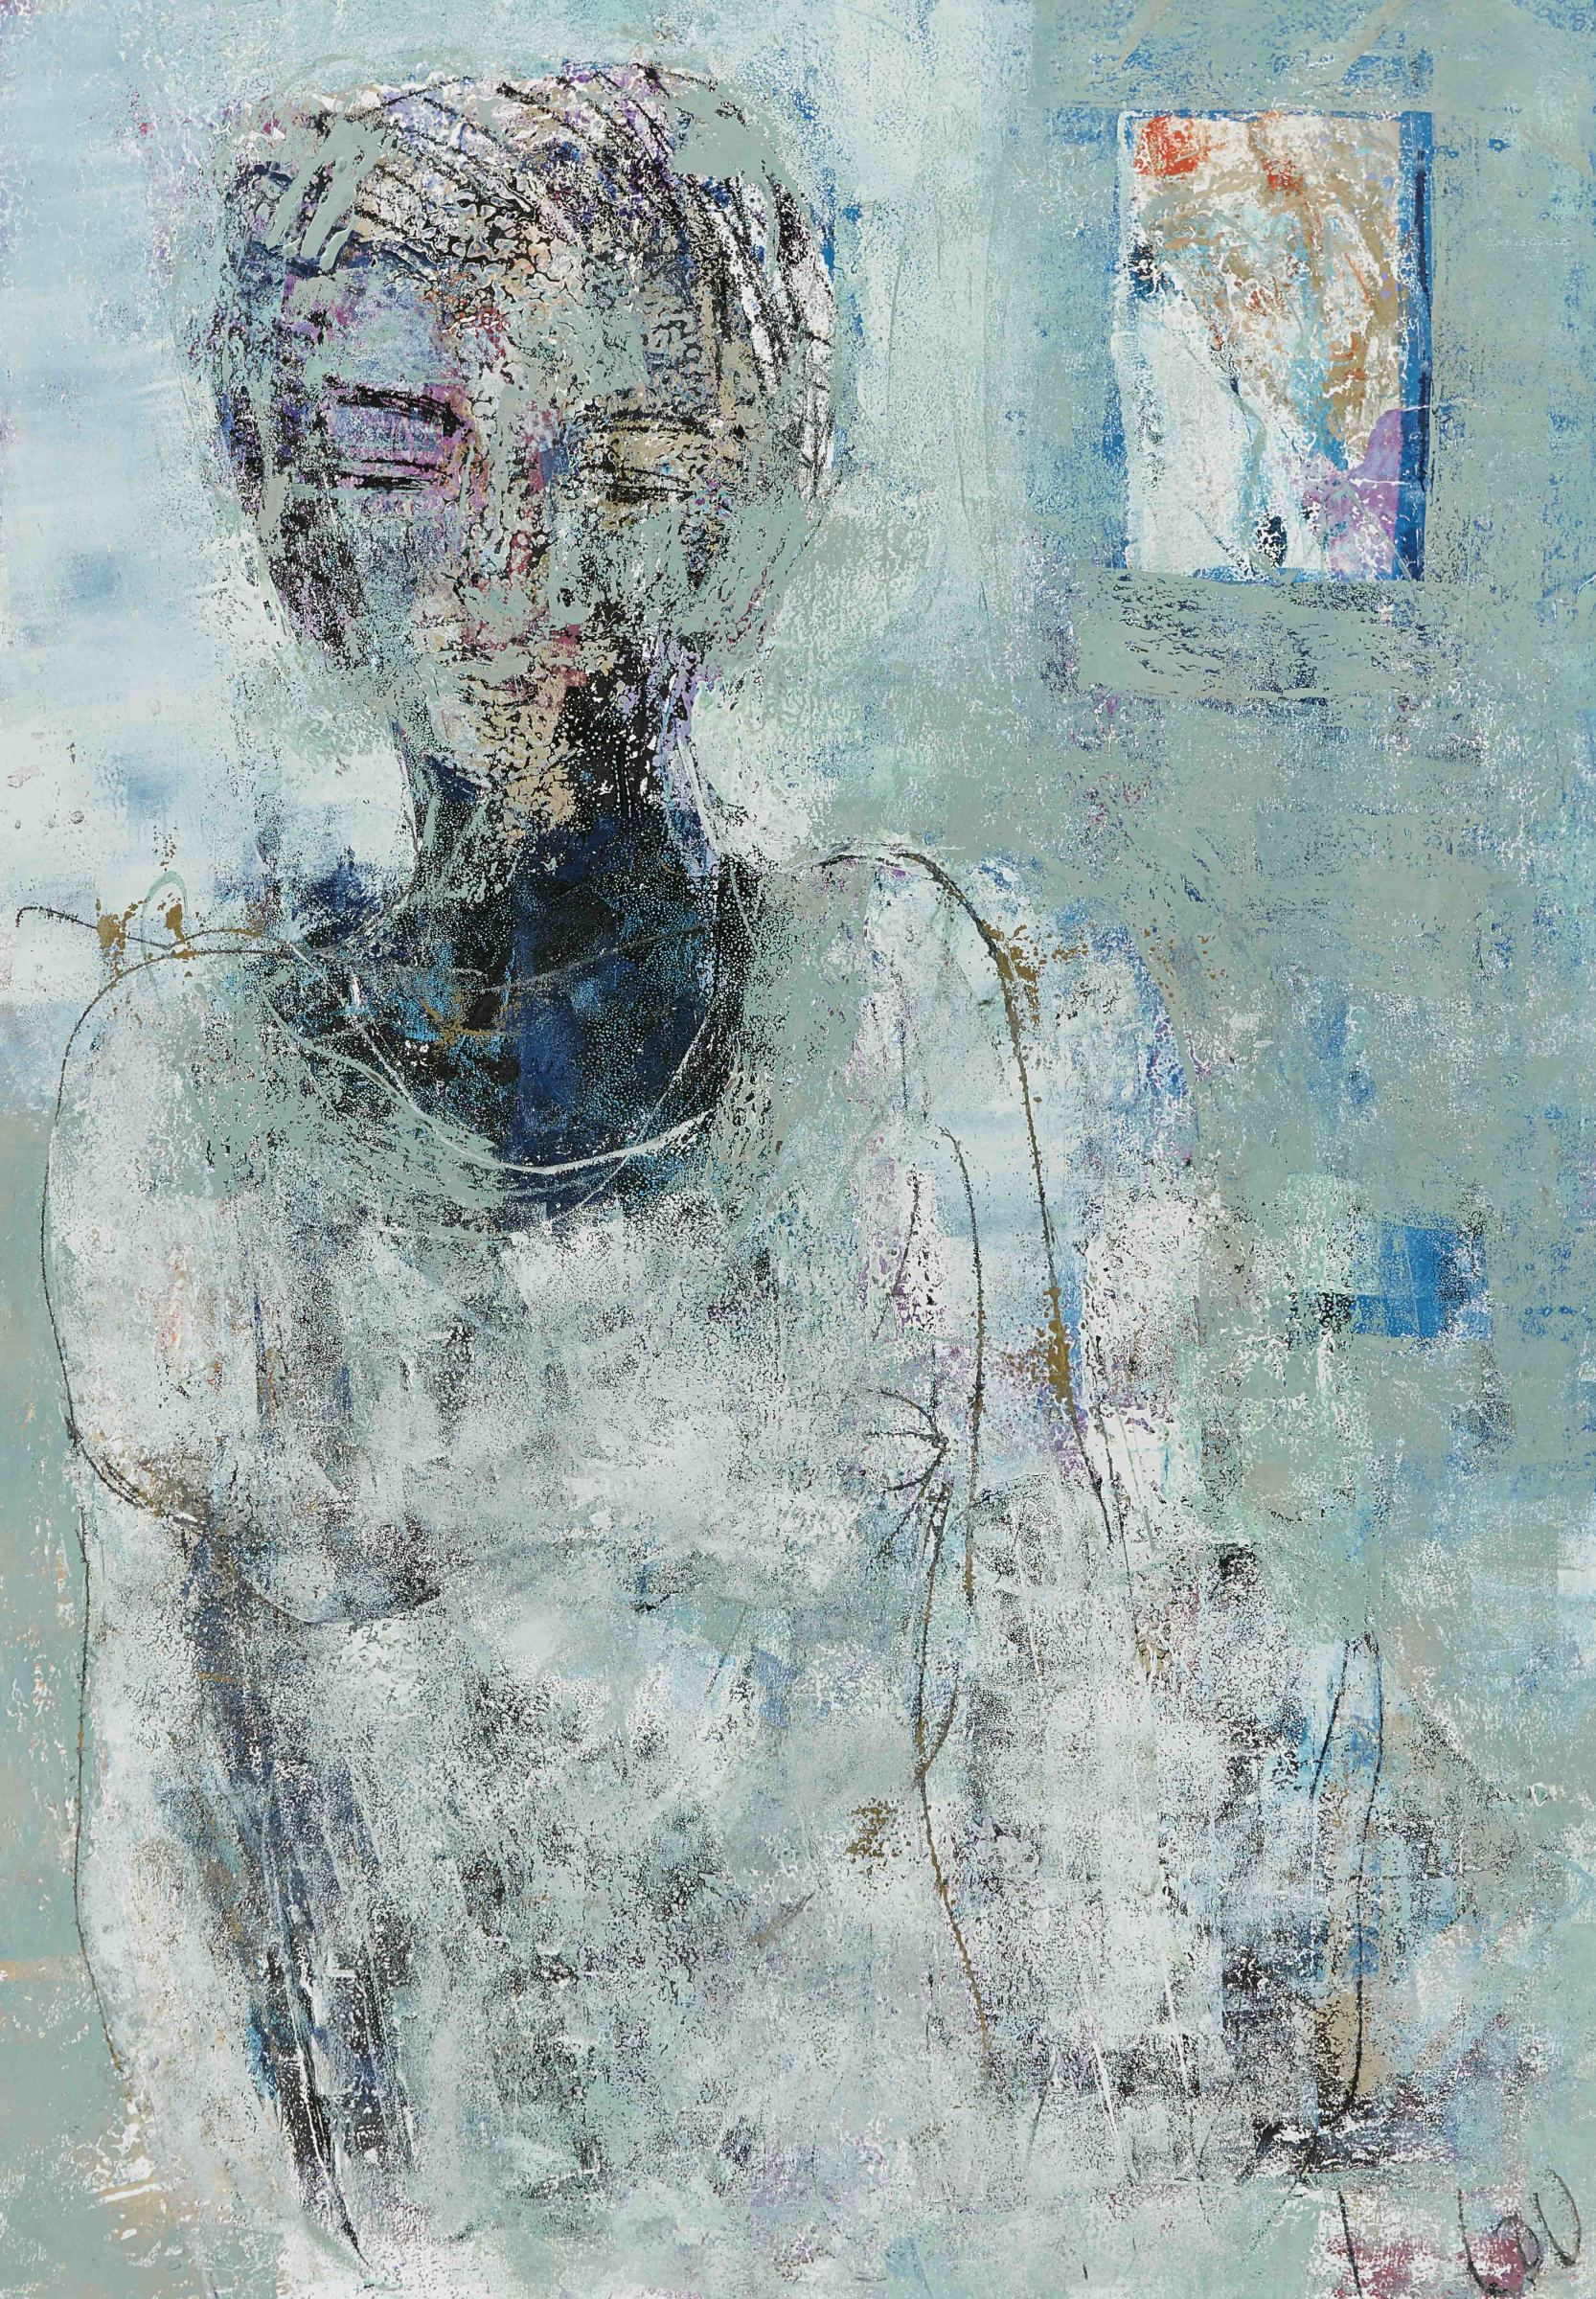 """<span class=""""link fancybox-details-link""""><a href=""""/exhibitions/12/works/artworks3663/"""">View Detail Page</a></span><div class=""""artist""""><strong>Louise Almon</strong></div><div class=""""title""""><em>The Window</em>, 2017</div><div class=""""medium"""">Printing Ink on Paper</div><div class=""""dimensions"""">1000x700mm</div>"""